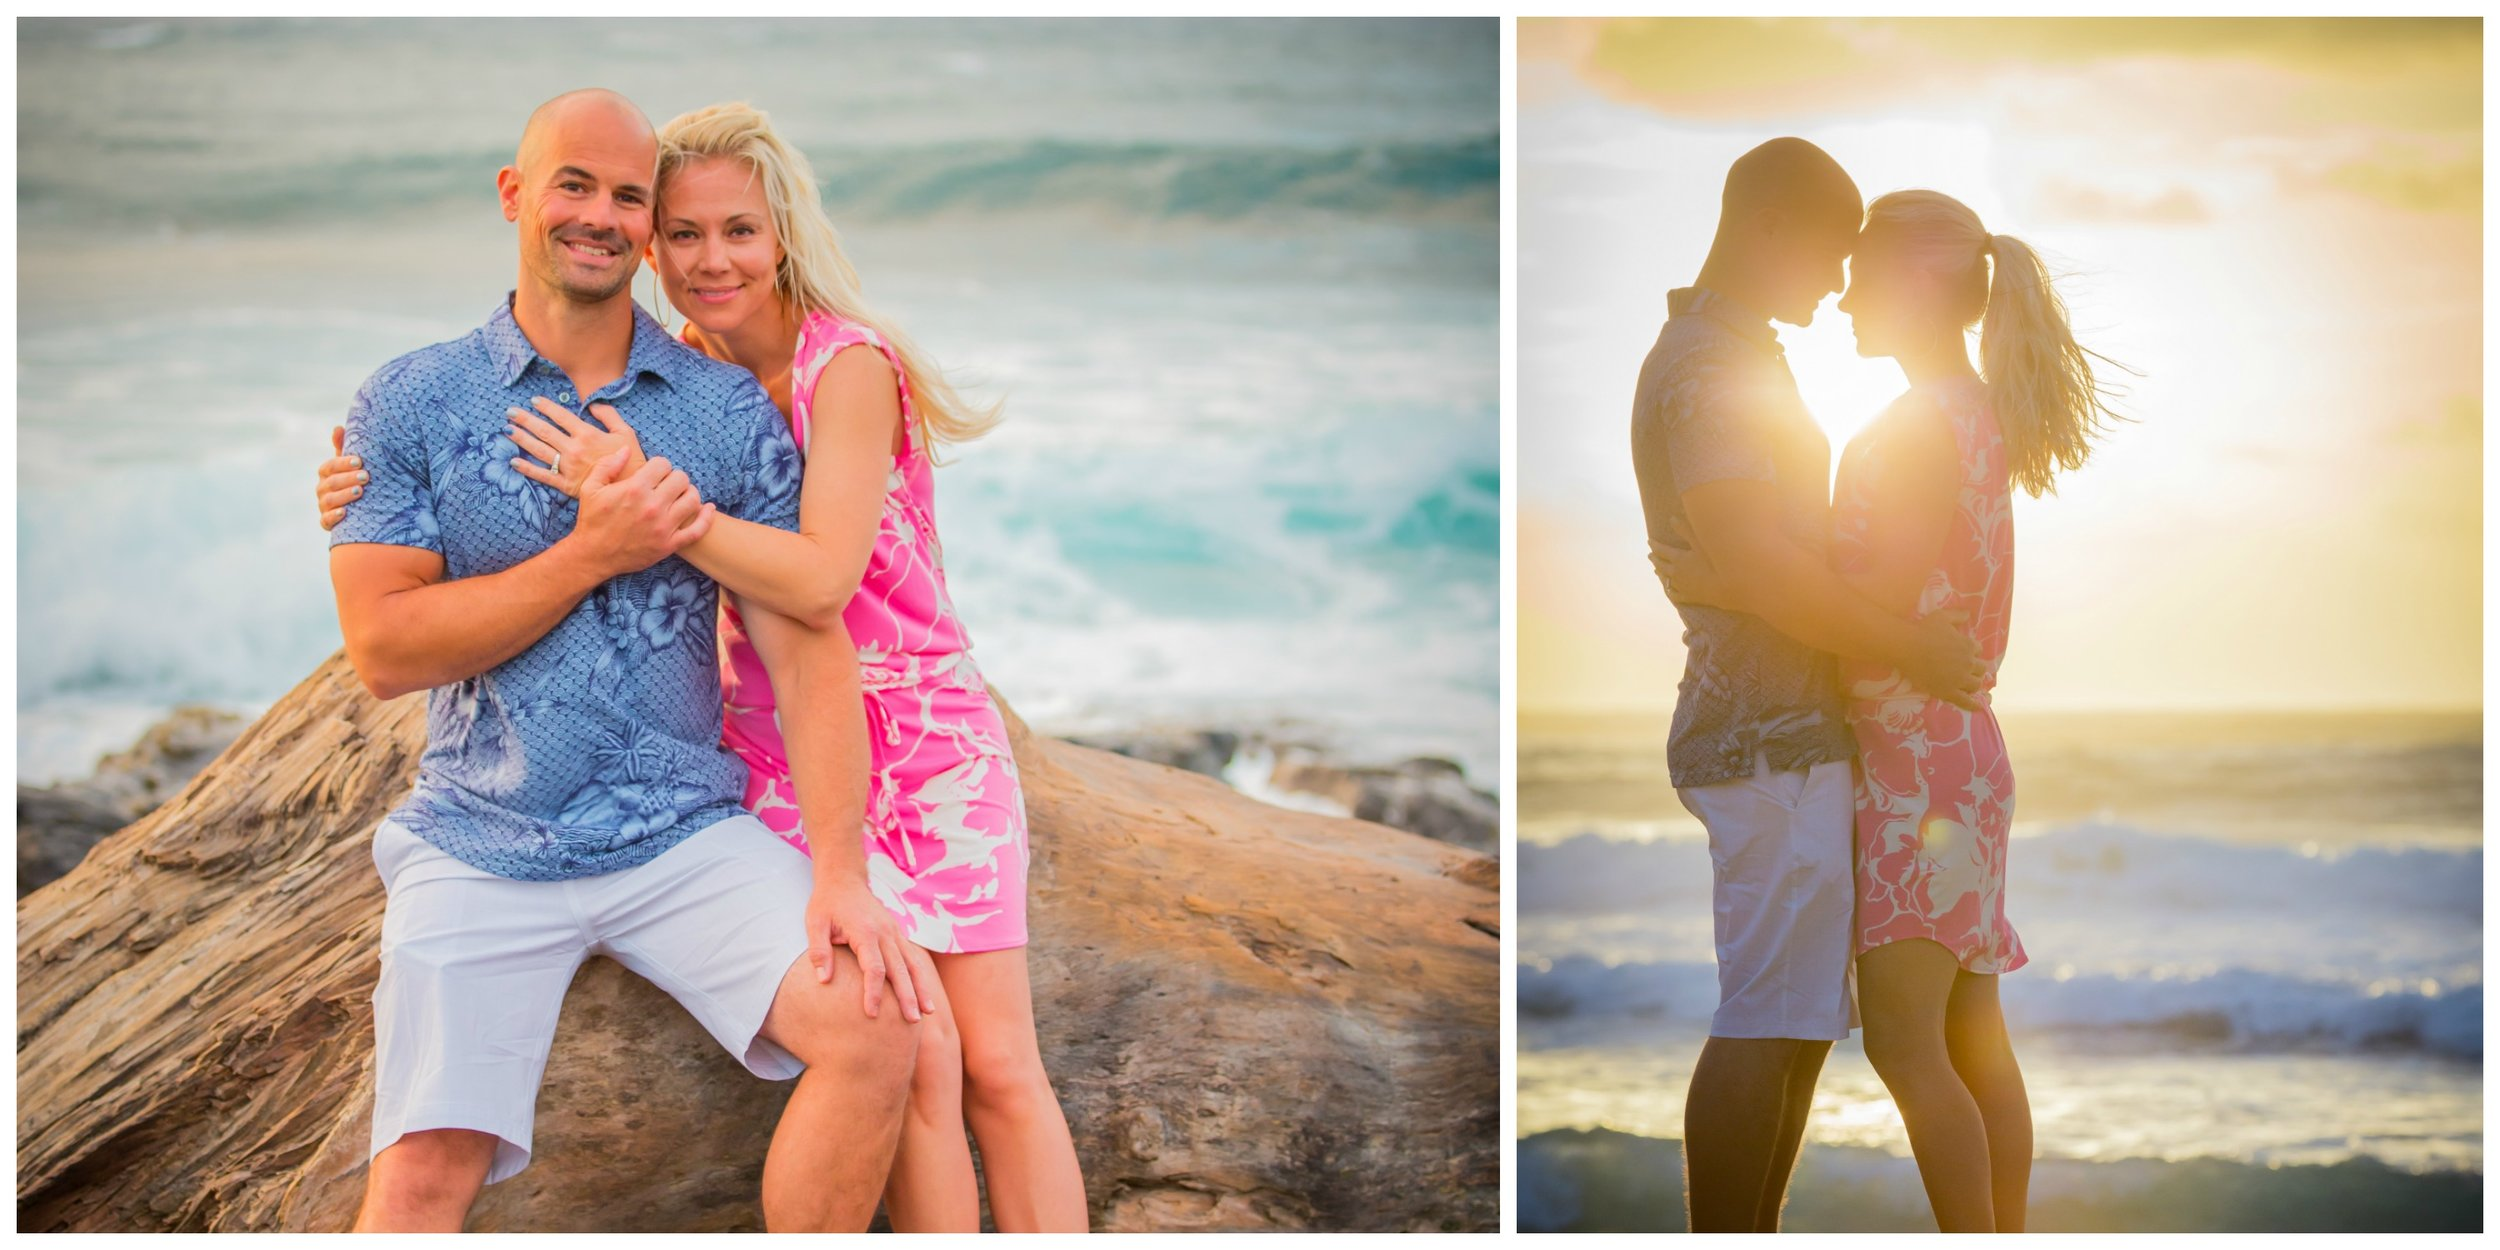 Pacific Dream Photography - Hawaii Photographer - Portrait Photographer - Engagement Photographer - Maui Photography - Honeymoon Photographer Kauai - Maui Photographer - Grand Wailea Photographer